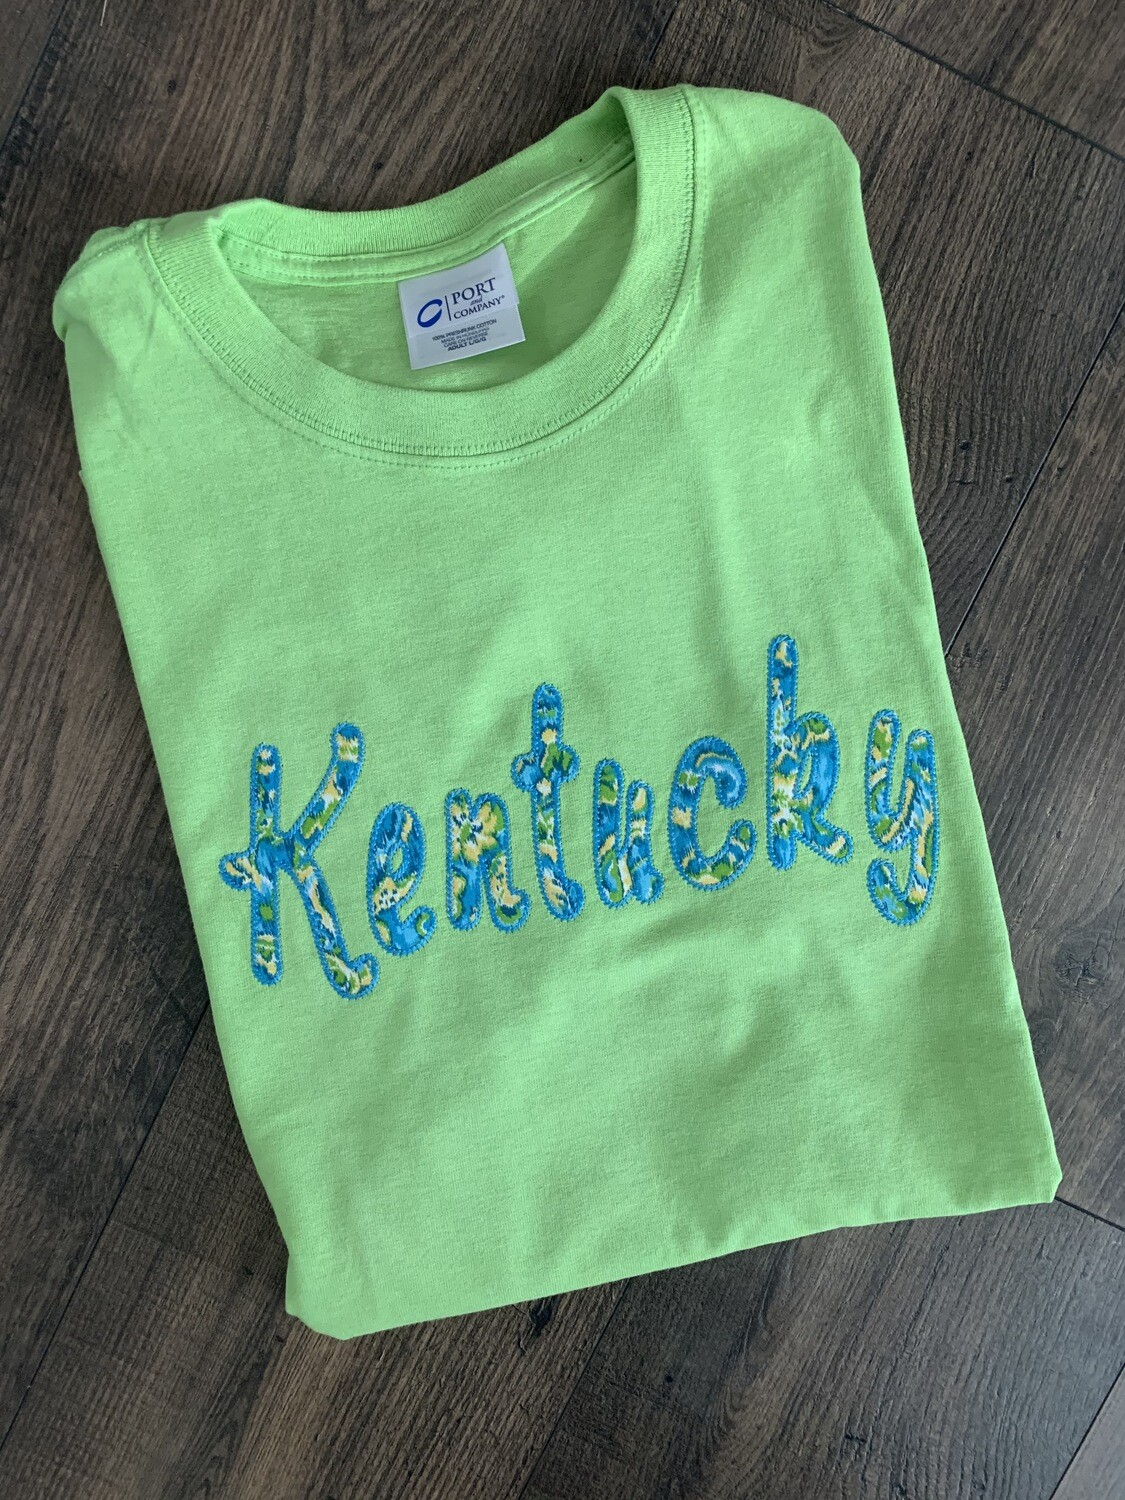 Kentucky Lime Green & Blue Short Sleeve Tee